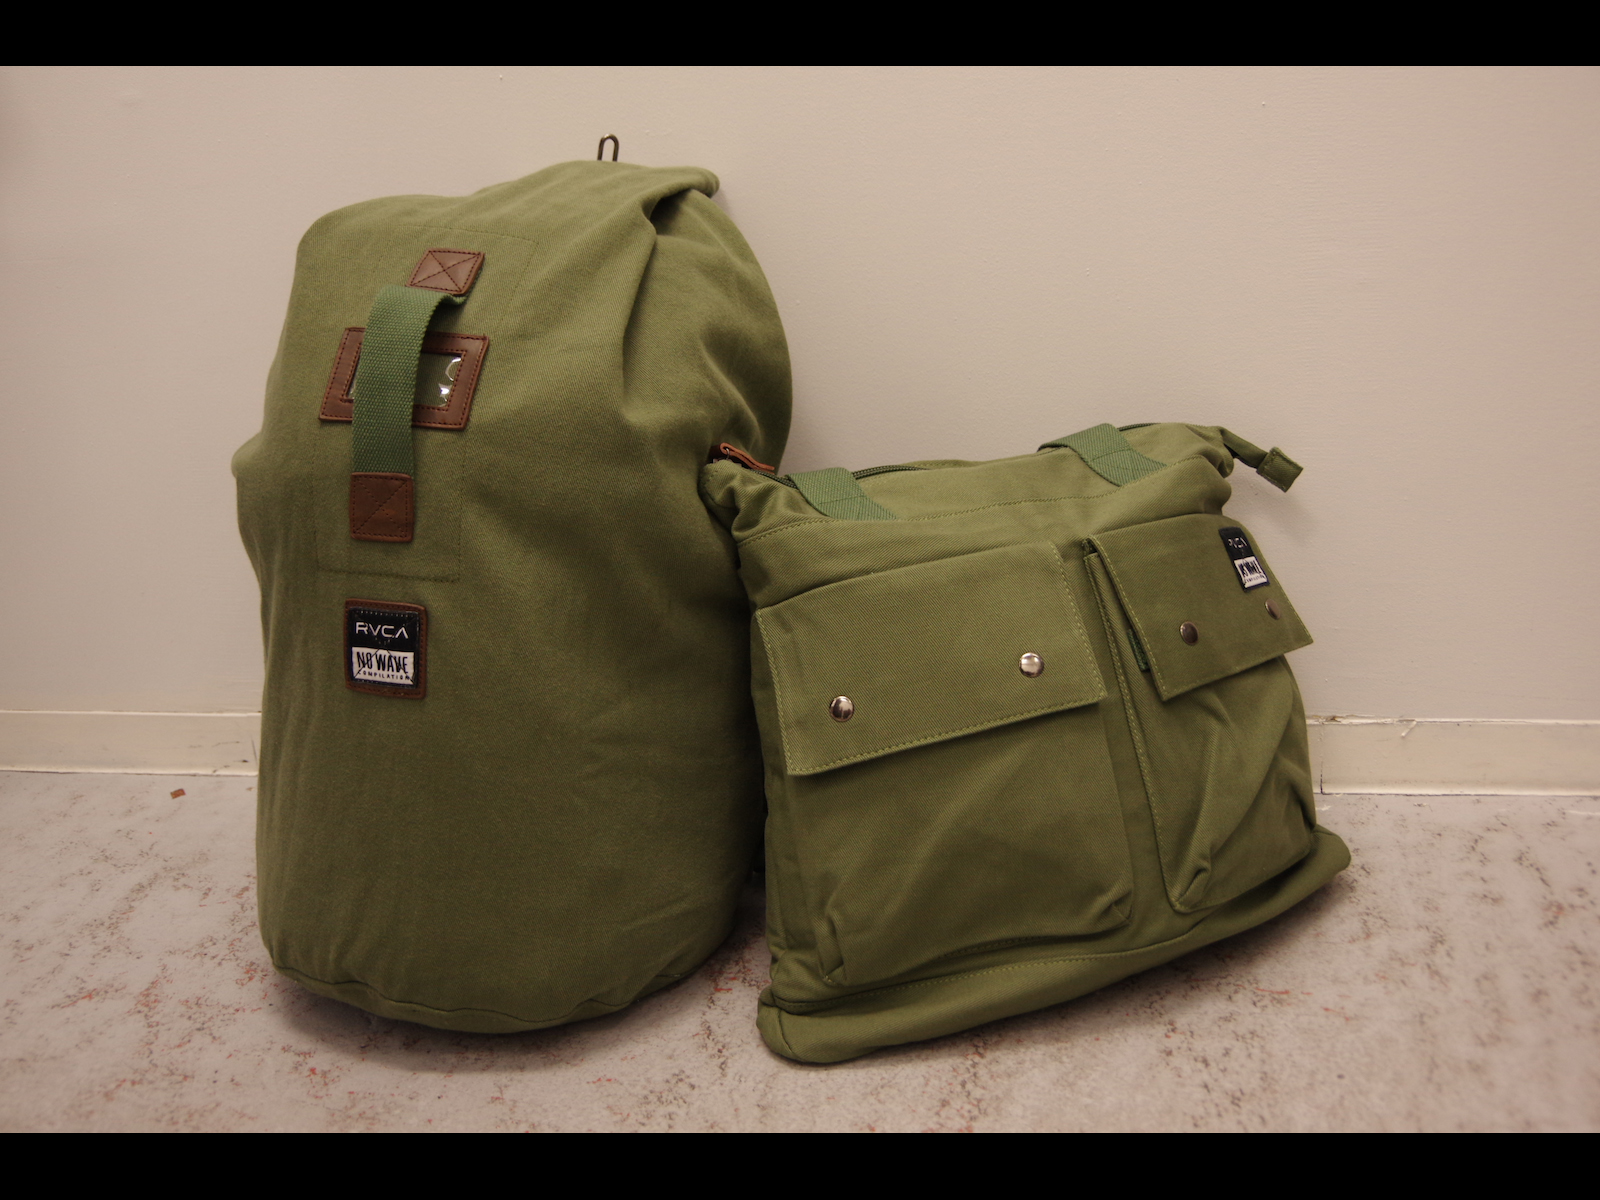 PICK UP ITEM : RVCA – MILITARY BAG